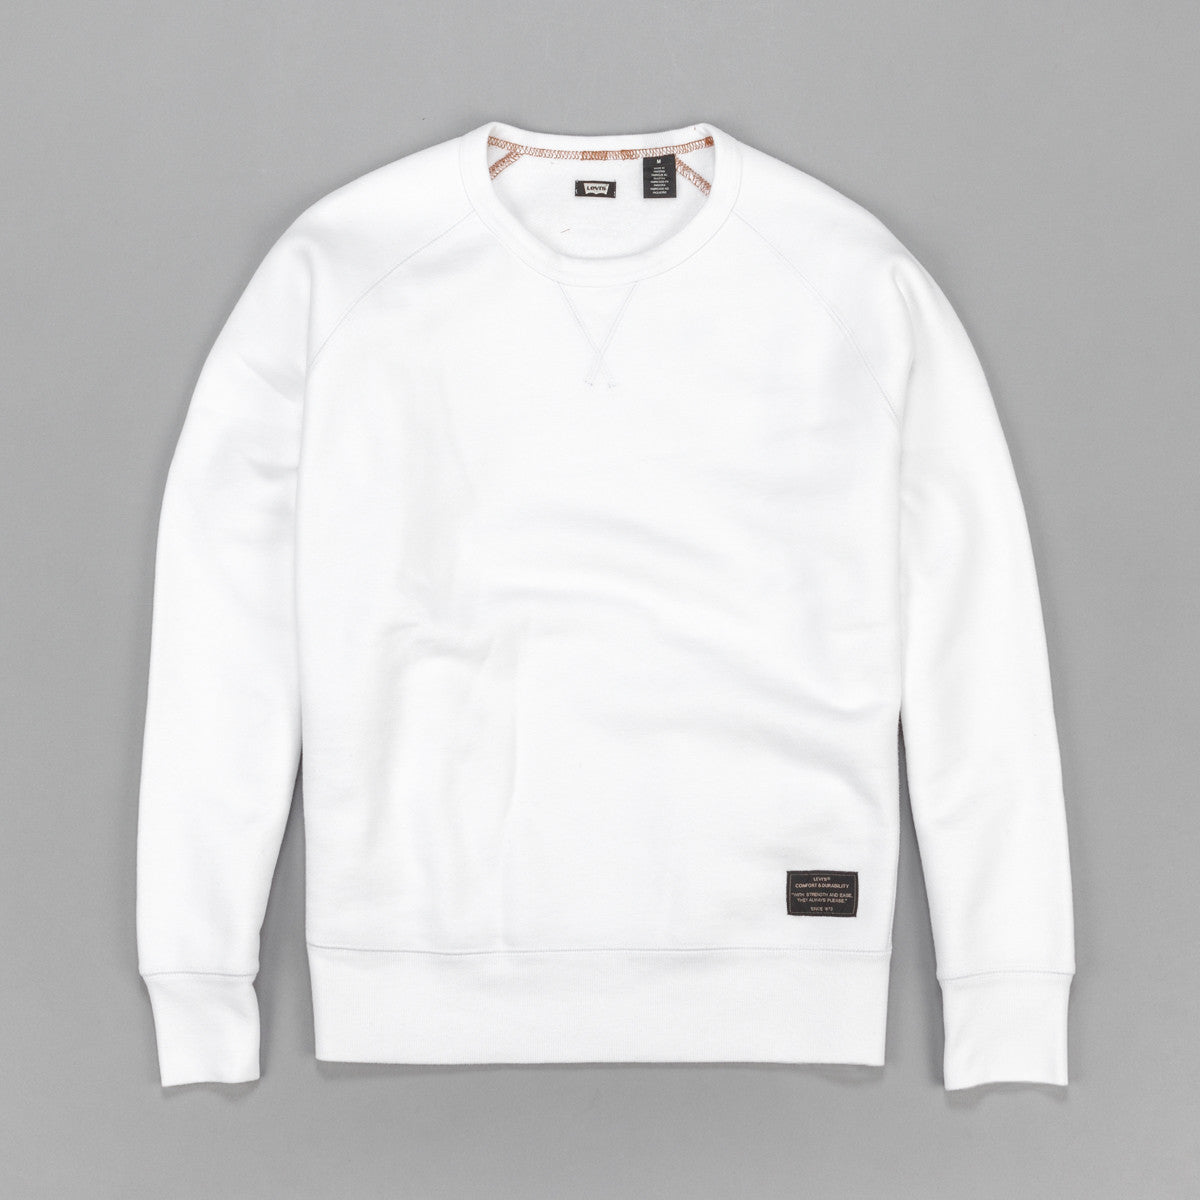 Levi's'® Skate Crew Neck Sweatshirt - Bright White